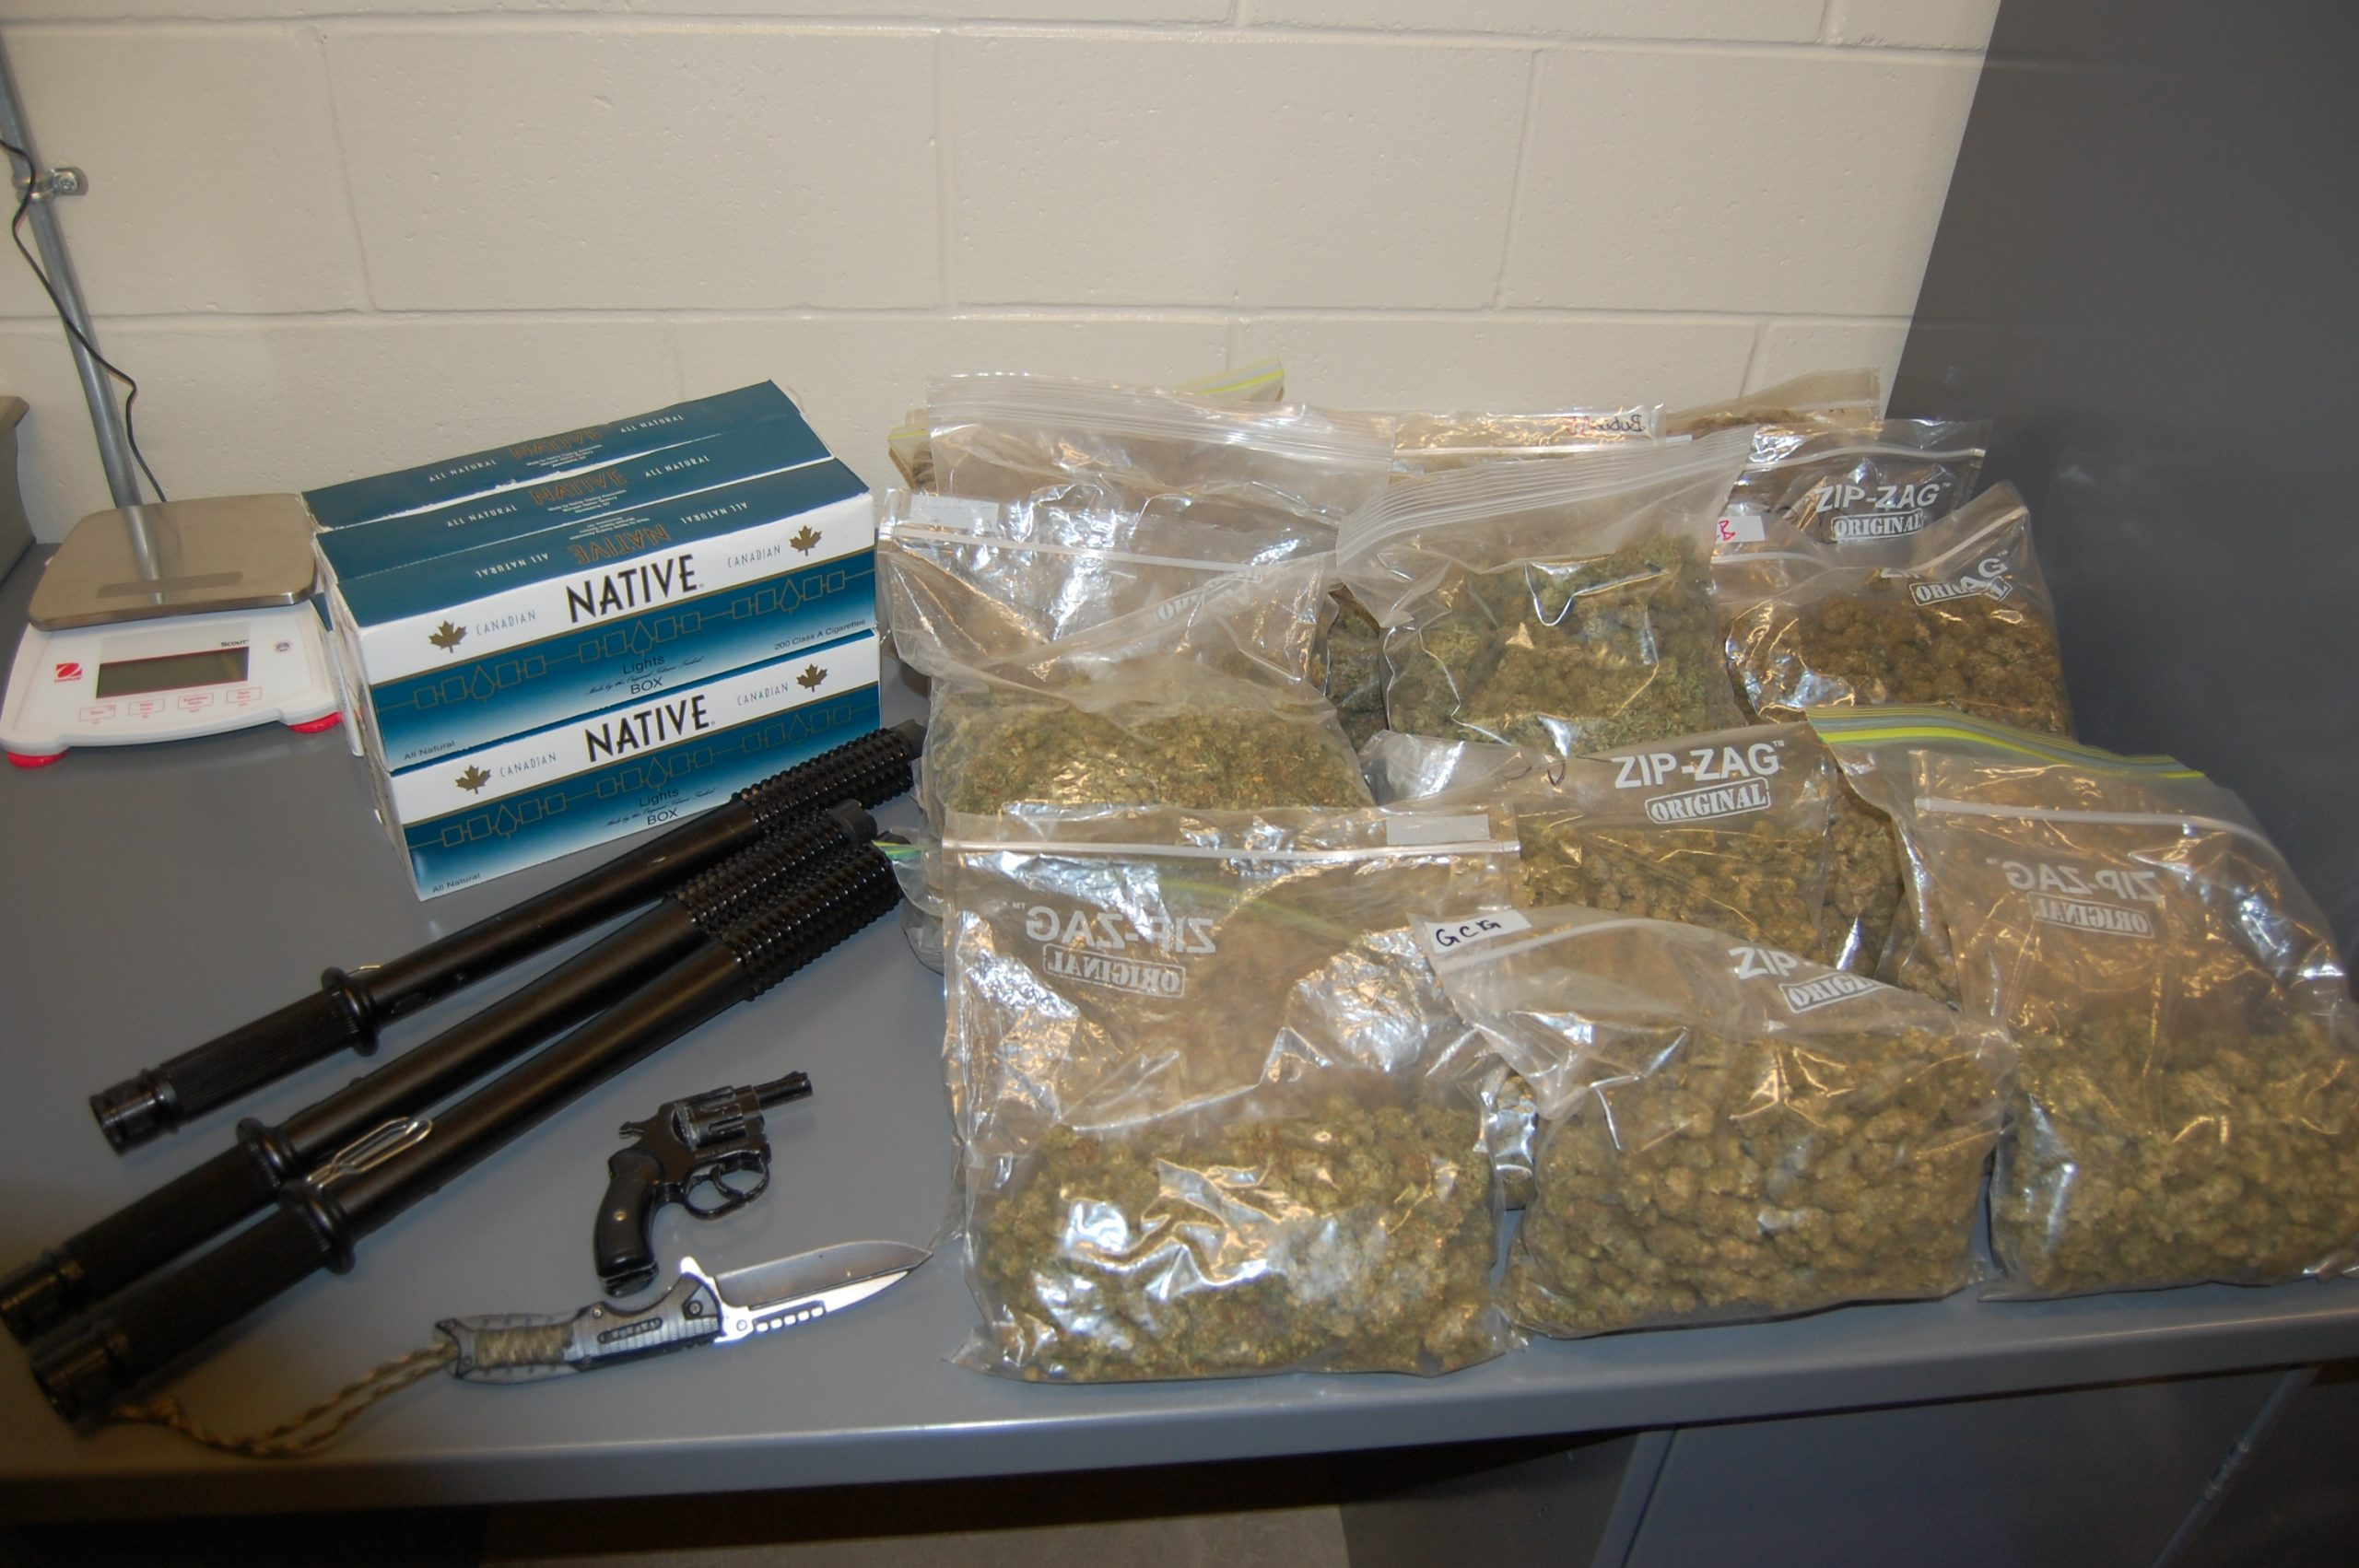 Traffic stop leads to big haul for Revelstoke RCMP